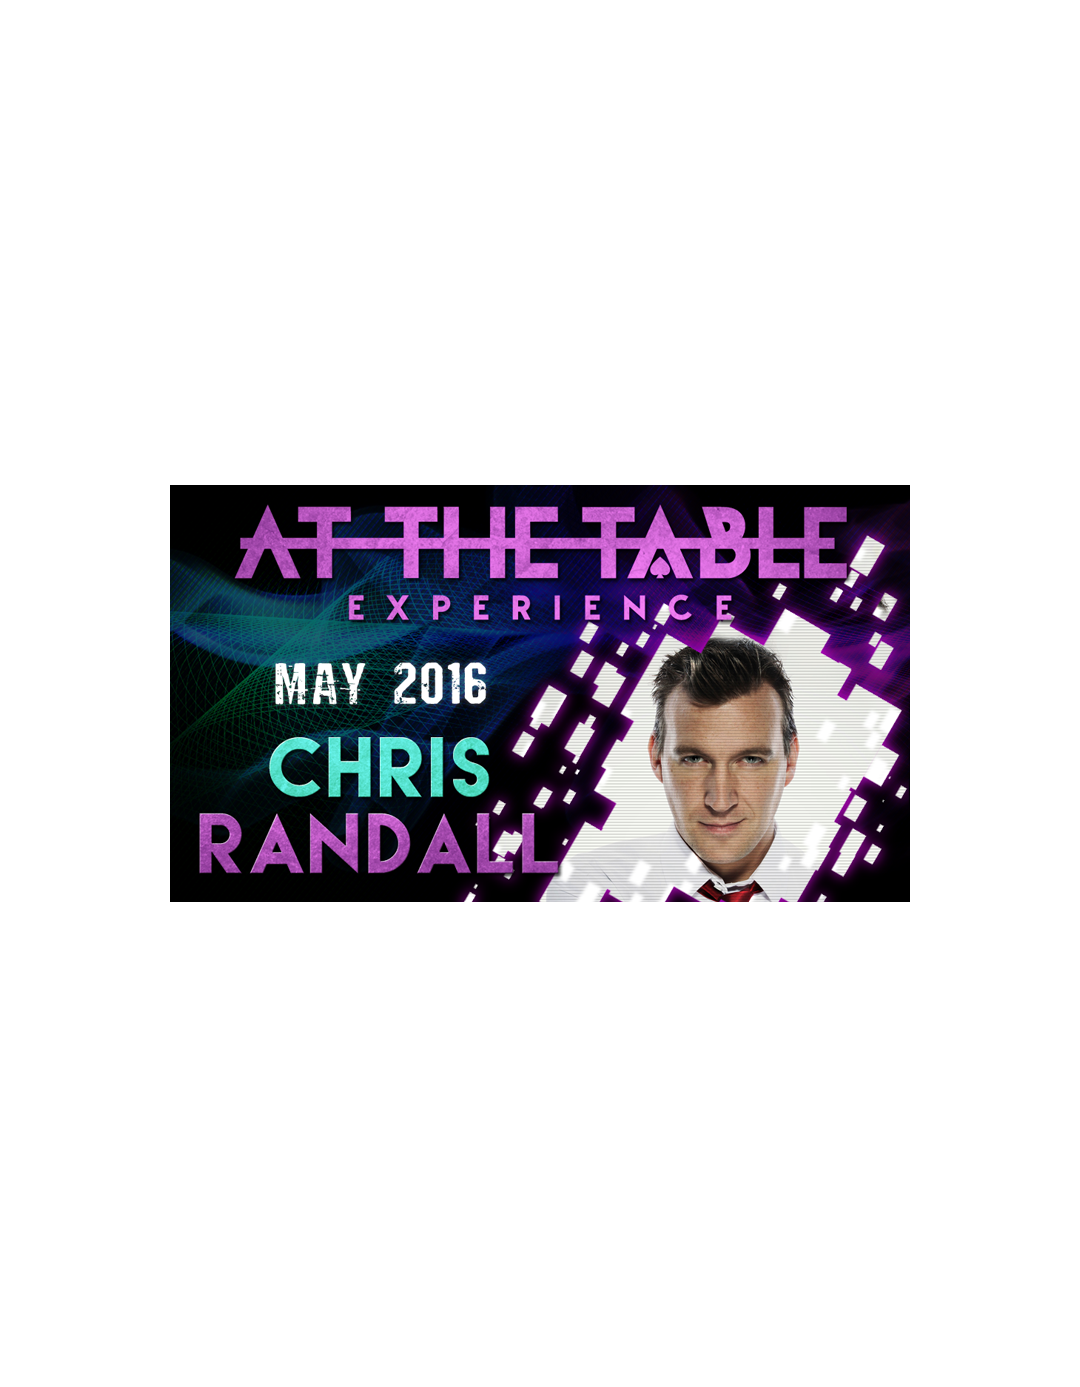 At the Table Live Lecture Chris Randall - 18 mai 2016 - At the table lecture